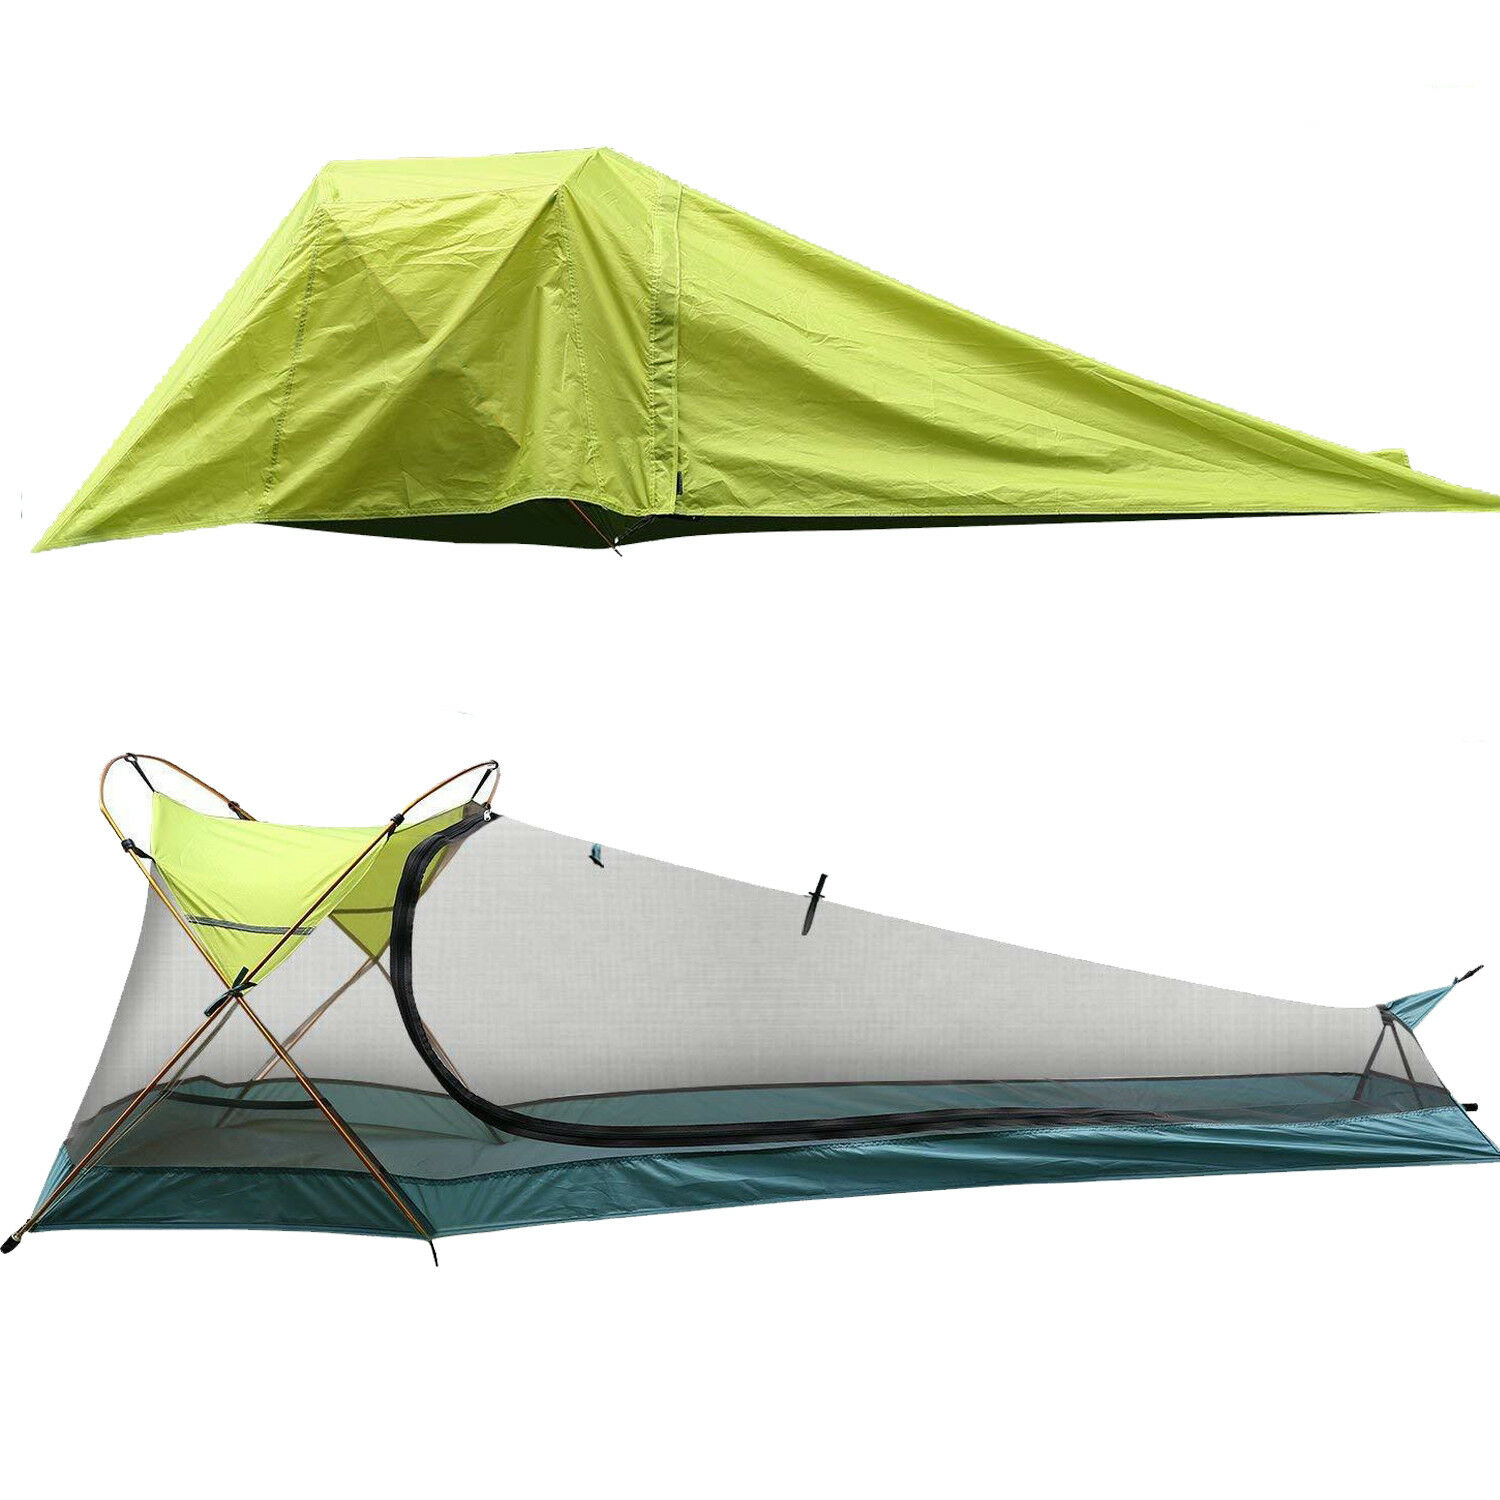 Rhino Vall Single Person Hiking Tents Sun Shelter Oudoor Ultralight Camping Tent